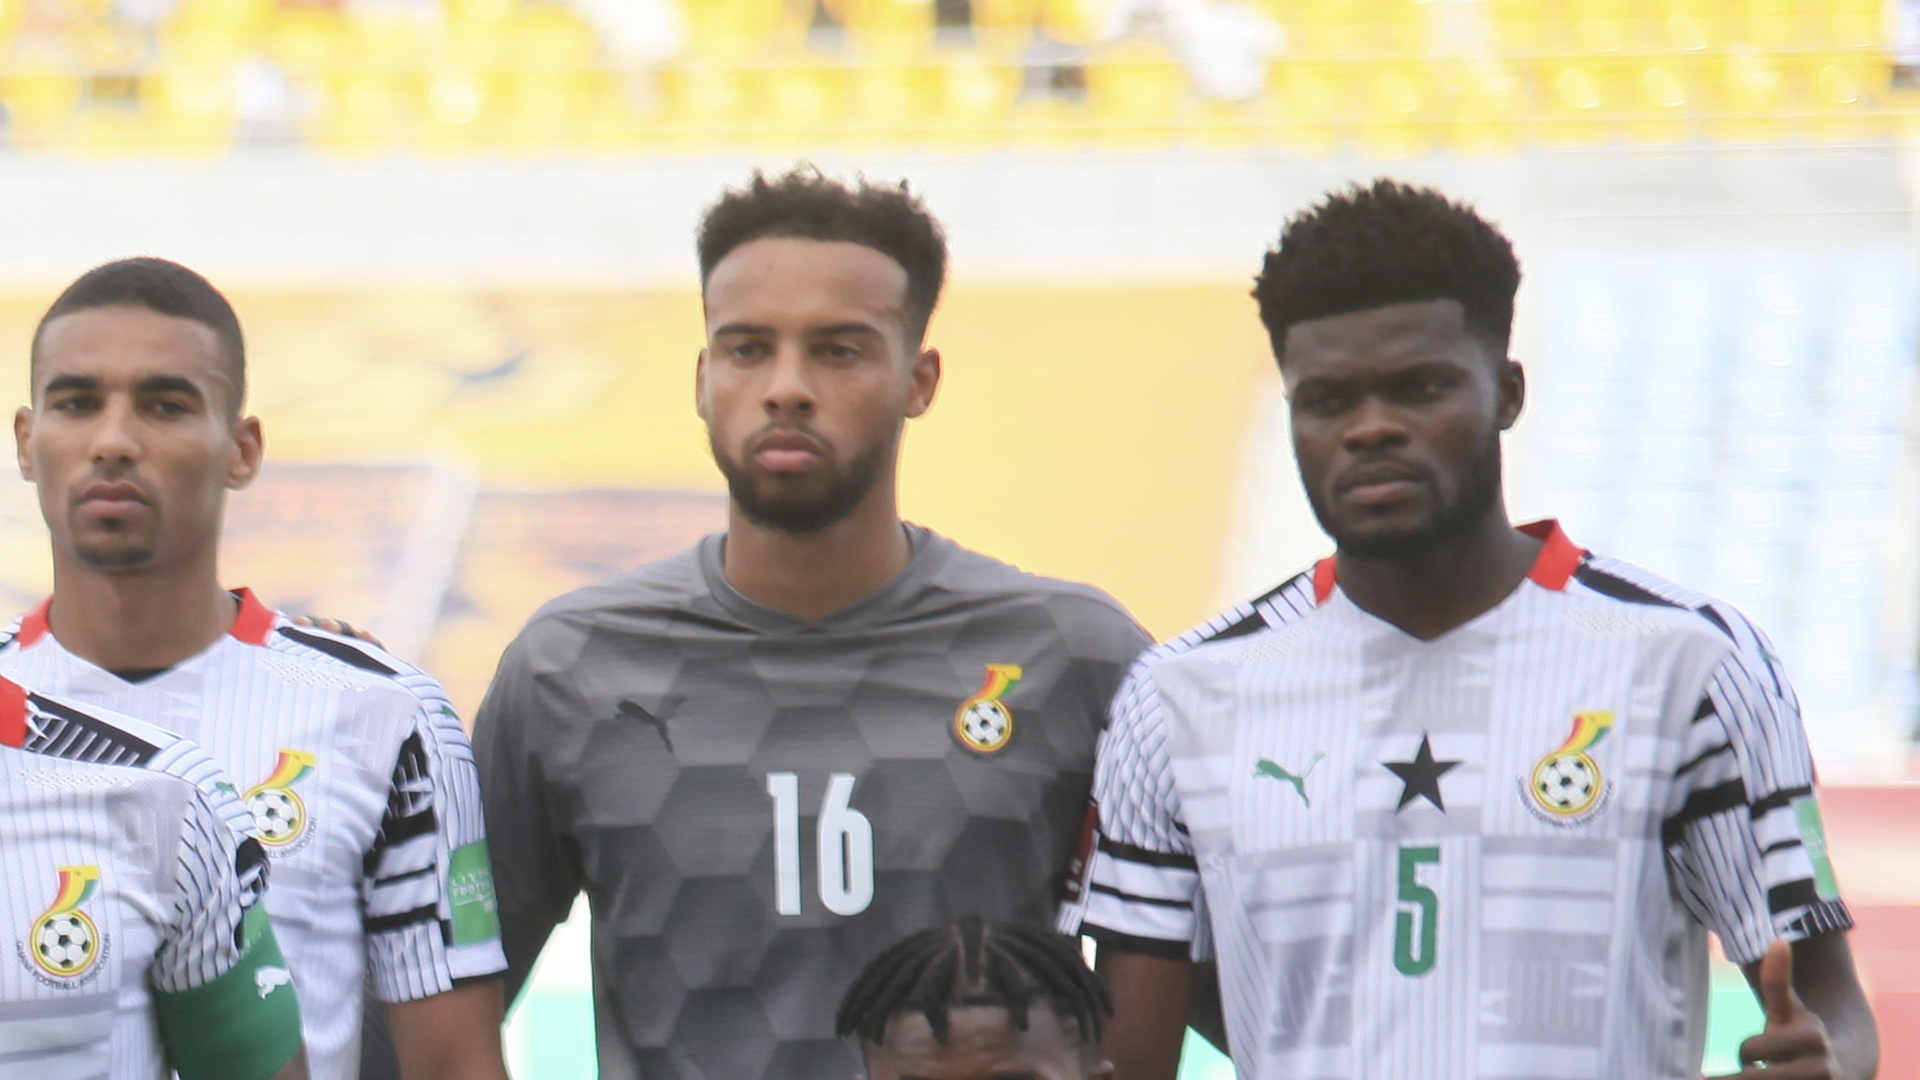 Fan View: 'Could have won Ghana 2010 World Cup' - Ghanaians rave about exciting Kudus and Partey